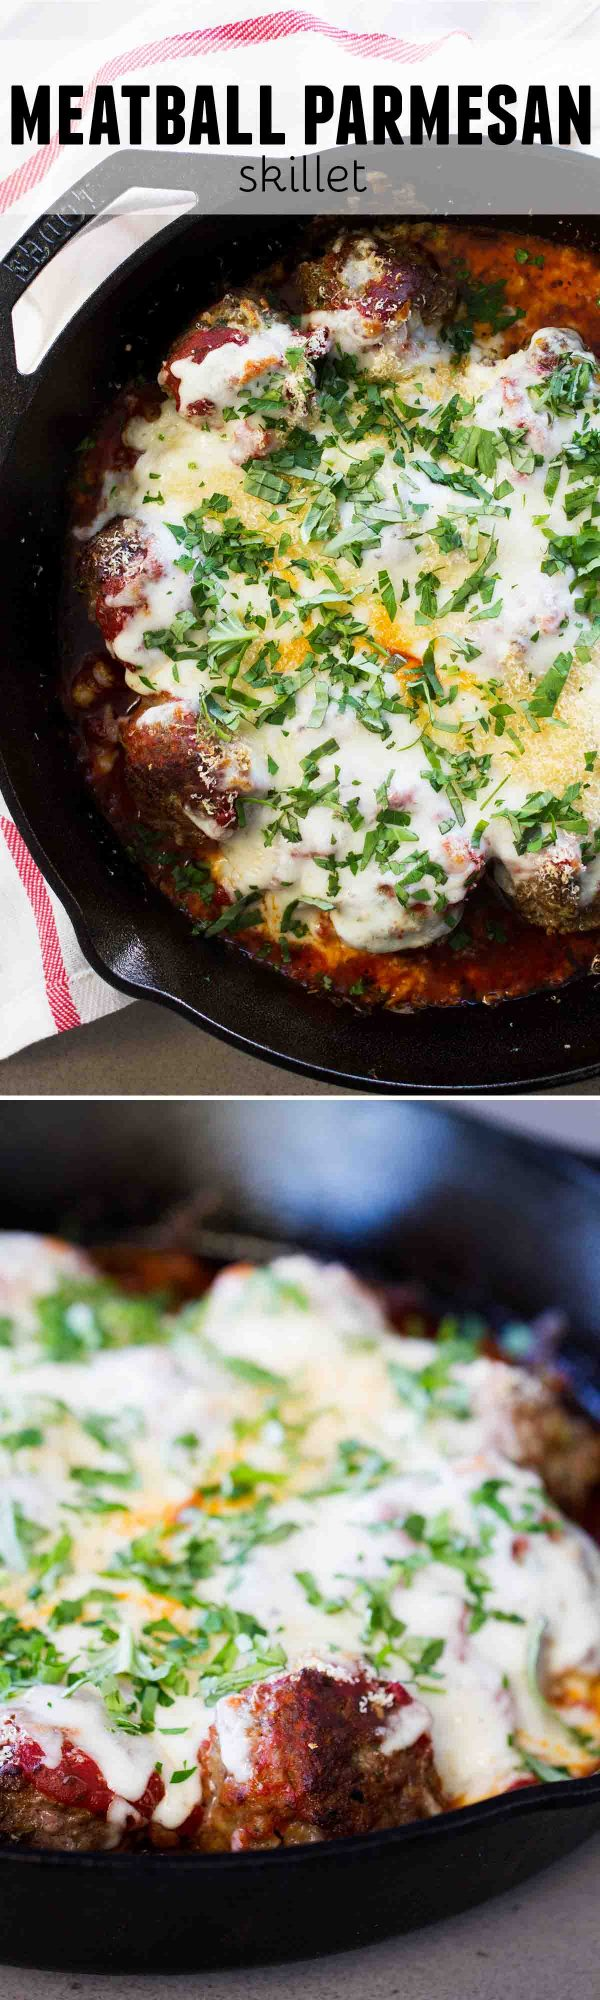 Meatball lovers - this Meatball Parmesan Skillet is for you! Juicy homemade meatballs are covered in a quick and easy marinara sauce, then smothered in cheese. Flavor overload!